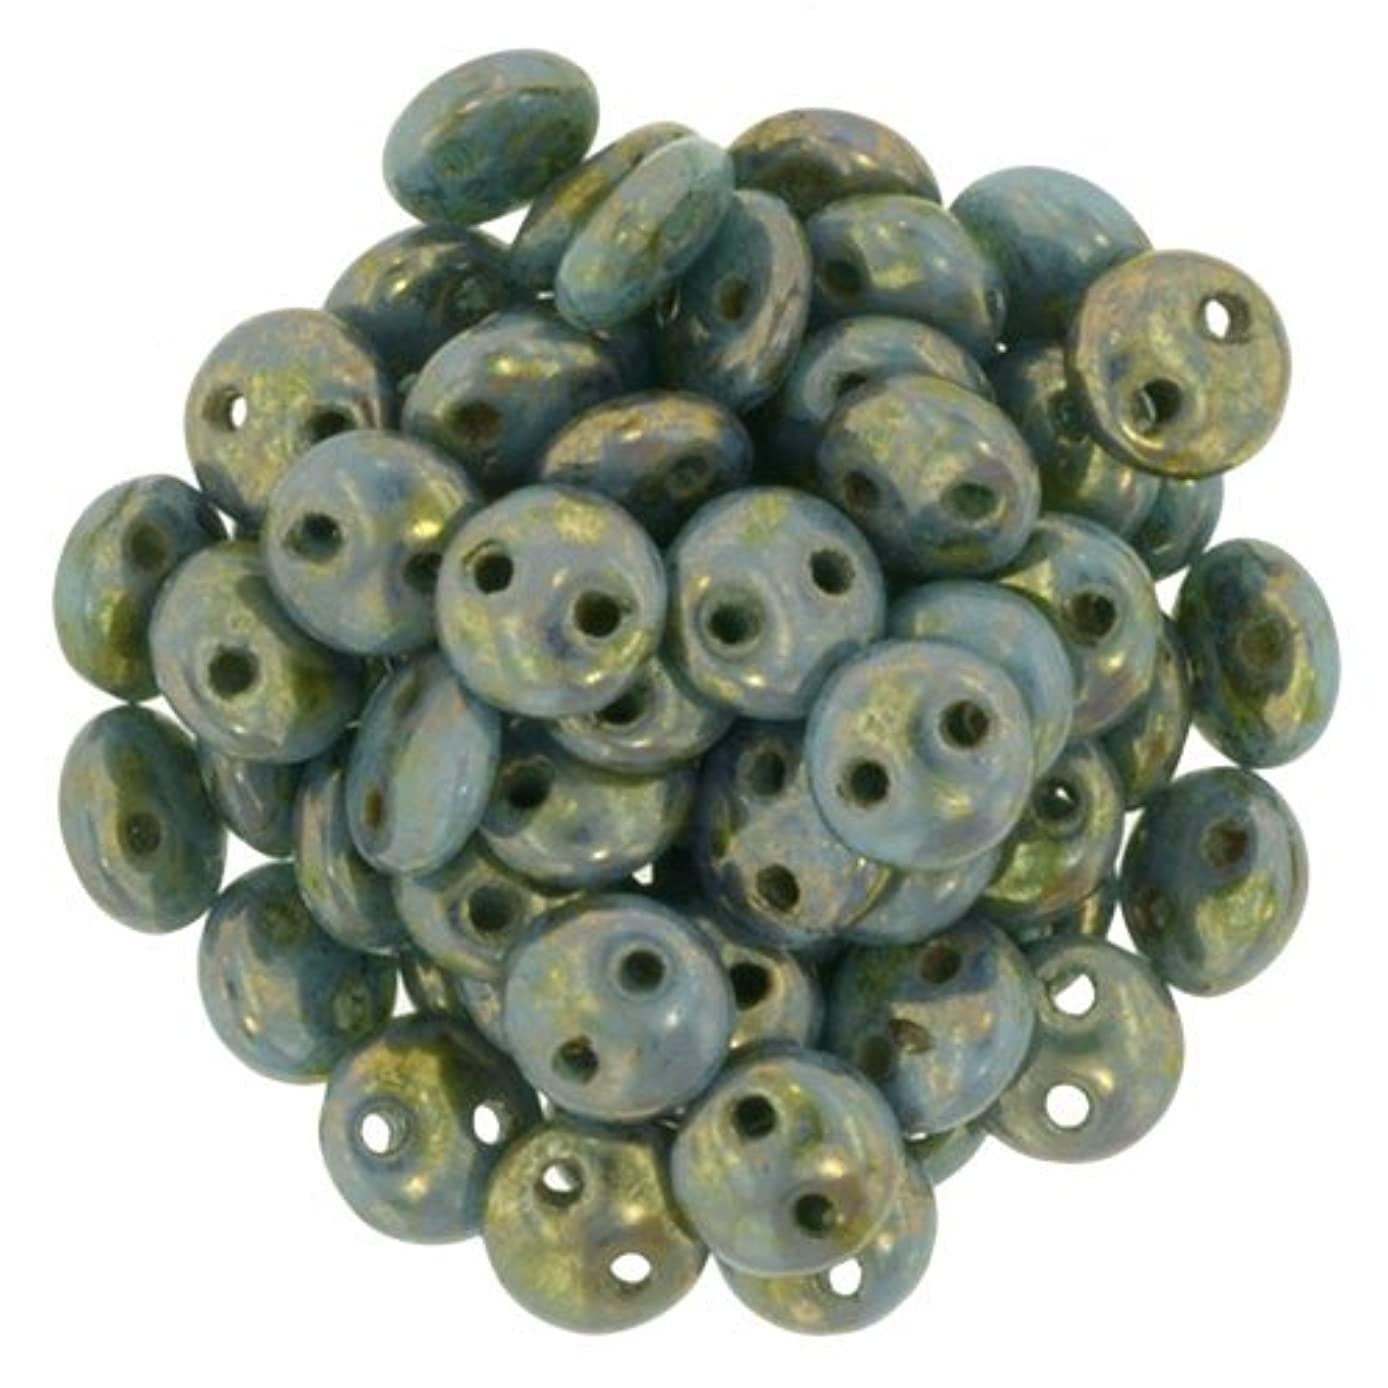 Czechmate 6mm Lentil Glass Czech Two Hole Bead - Bronze Picasso/Turquoise (50 beads)